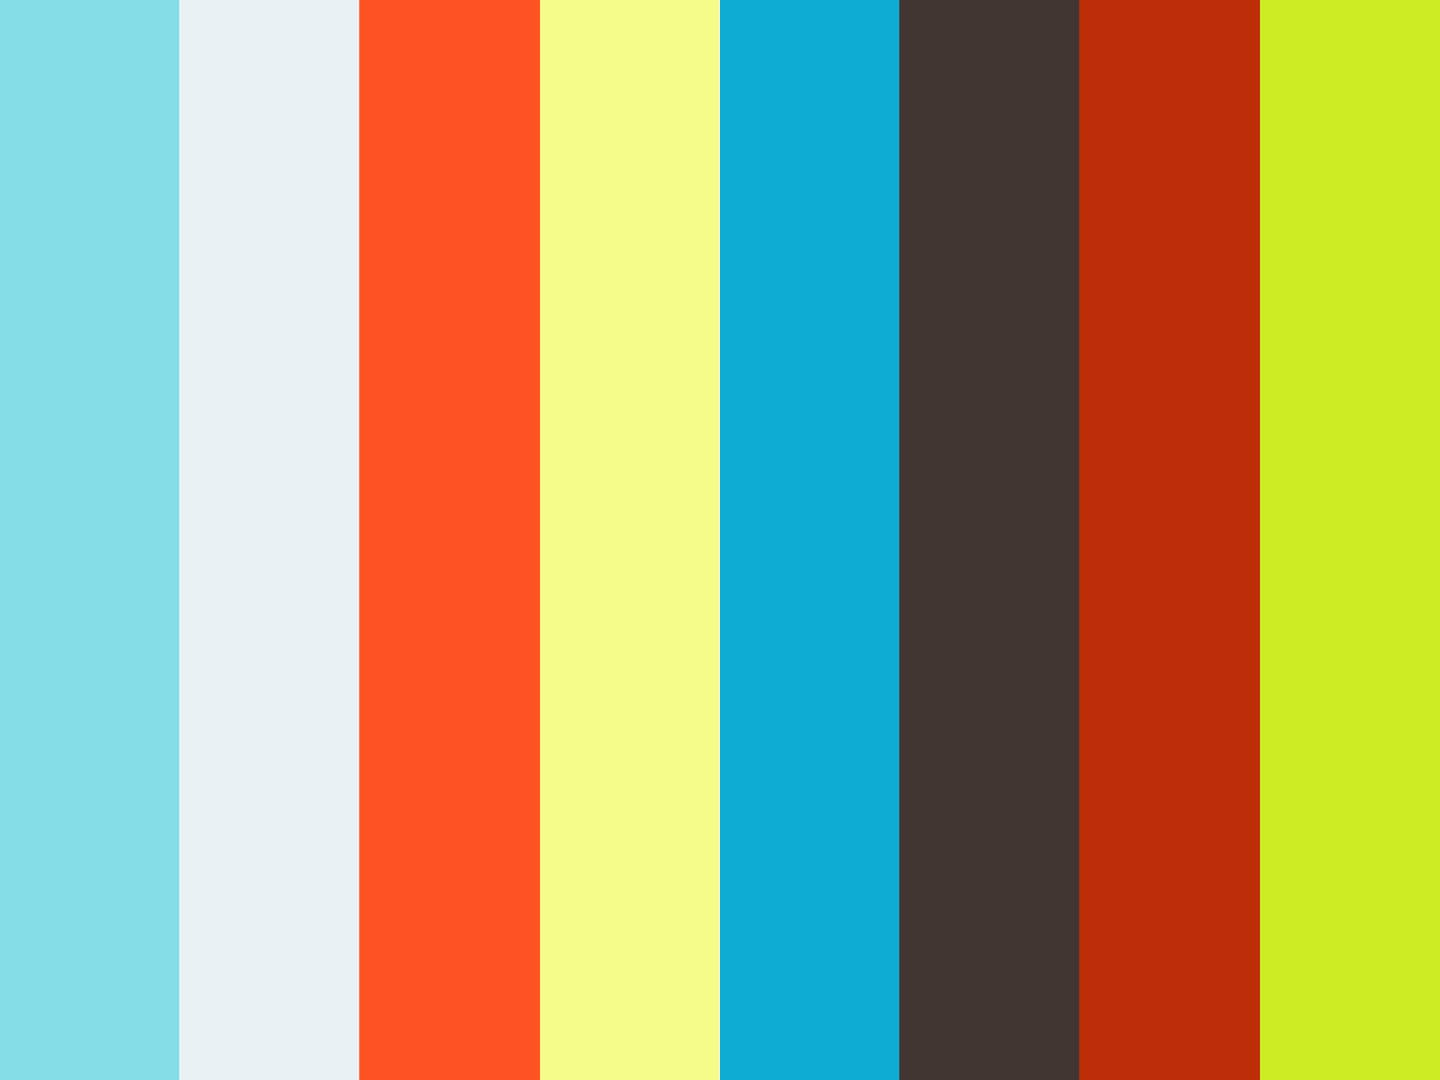 Tutoriel pose de gazon artificiel sur terrasse greenside Gazon synthetique solde